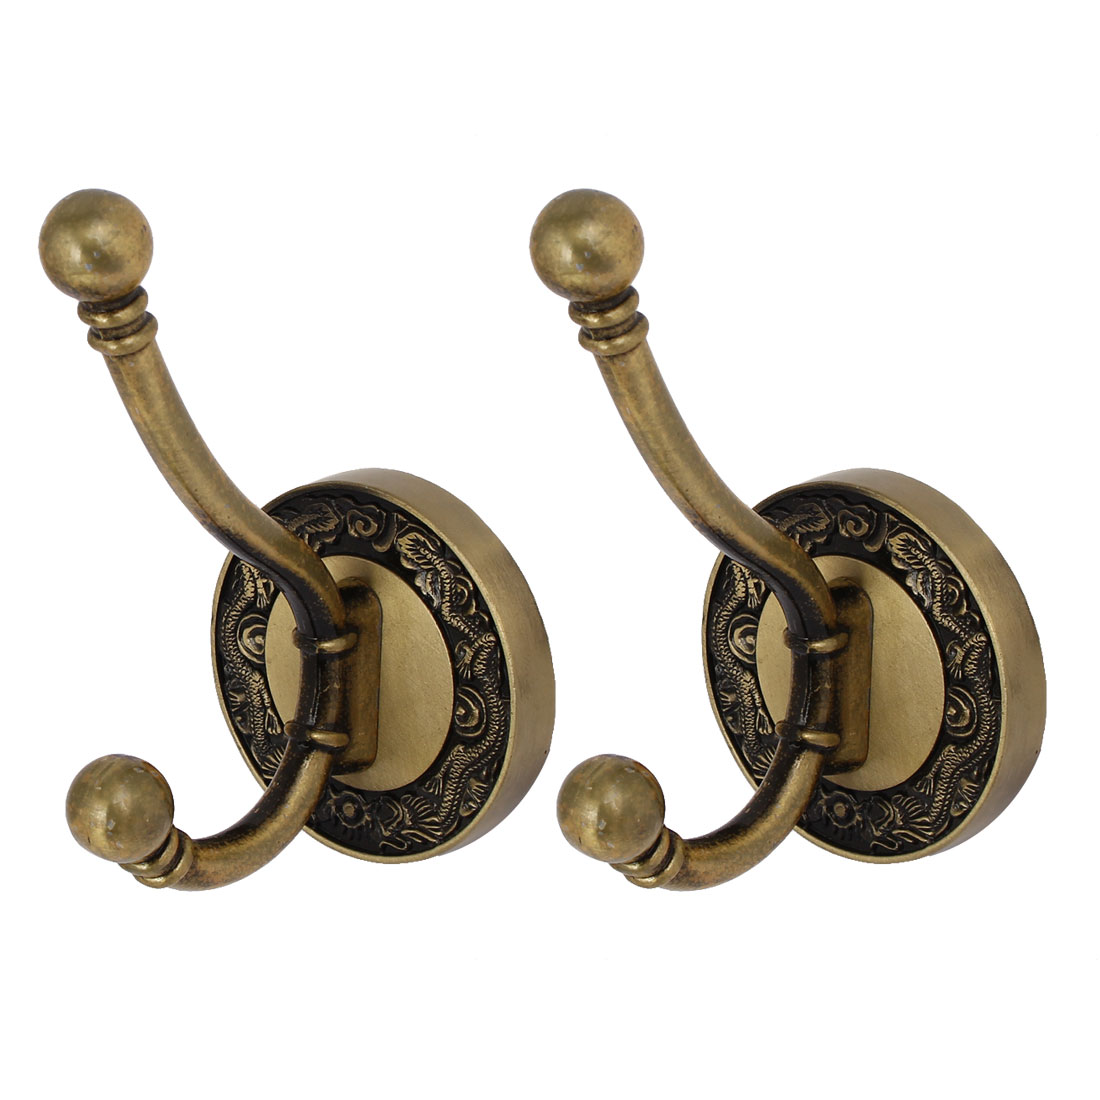 Clothes Towel Metal Round Base Double Hook Wall Mounted Hanger Bronze Tone 2pcs